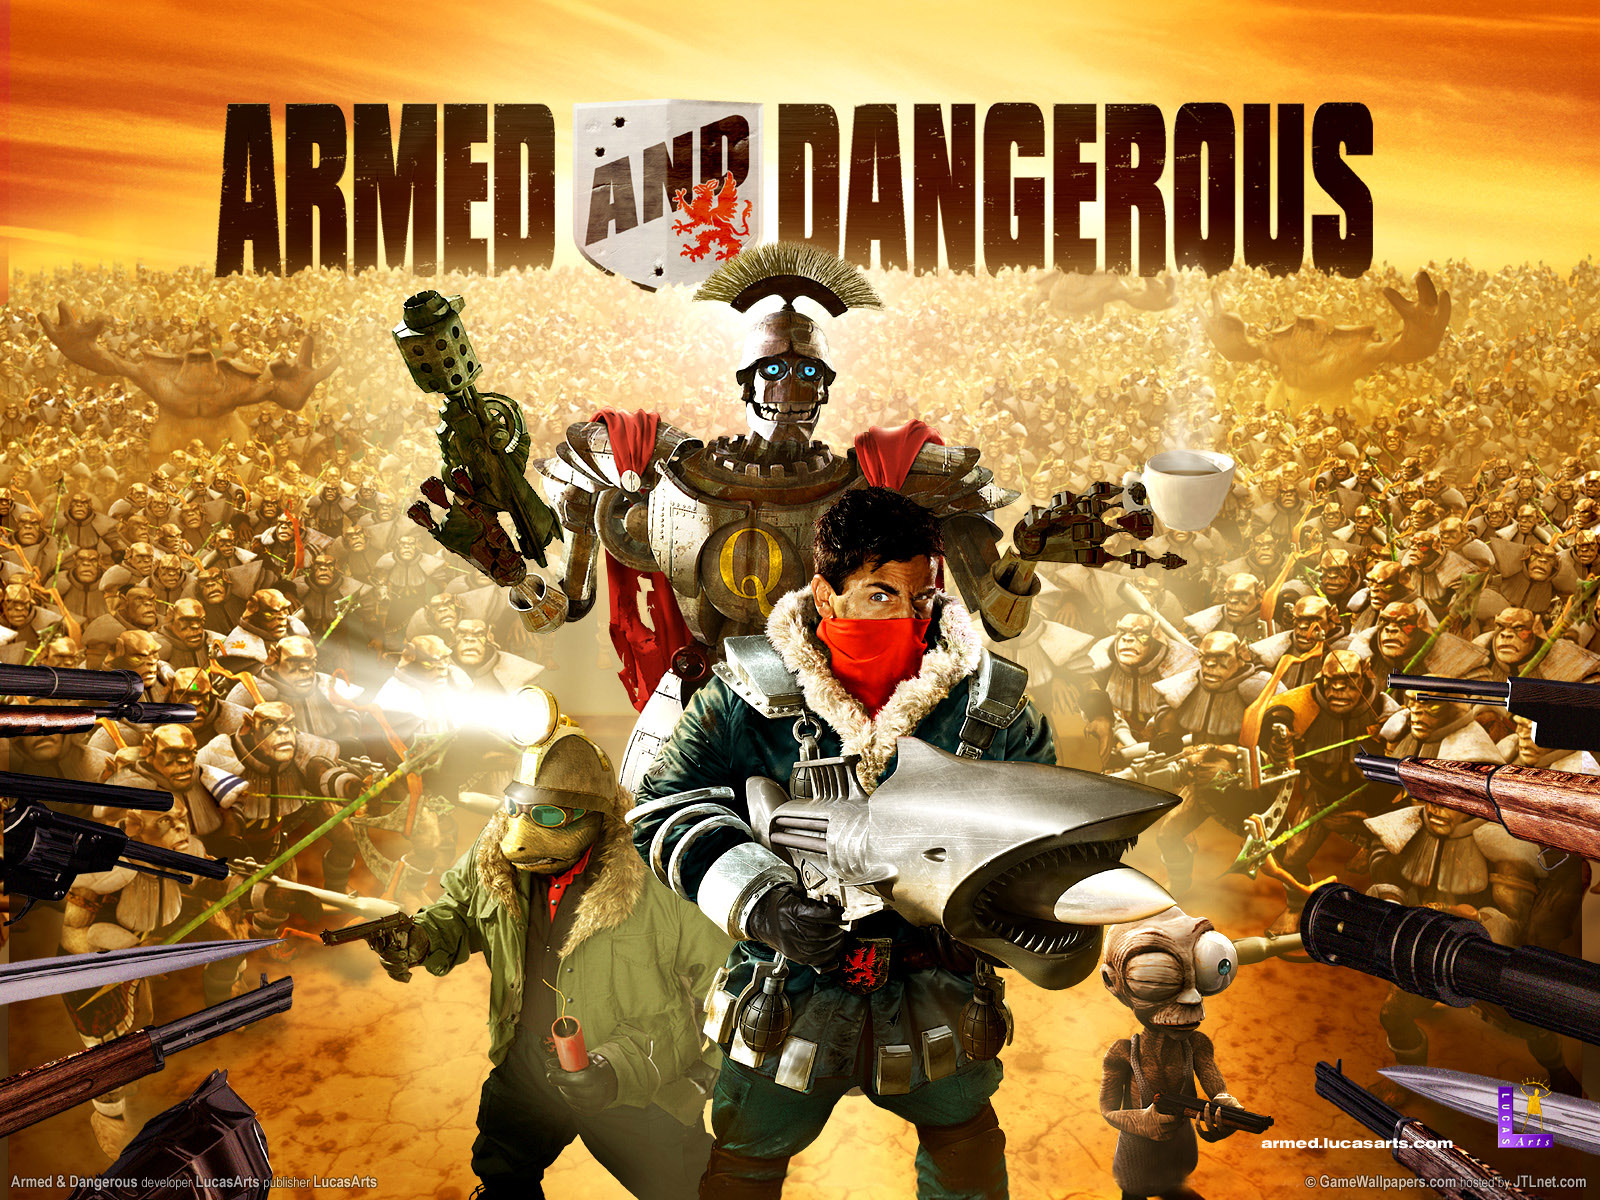 armed-and-dangerous-wallpapers_18397_160